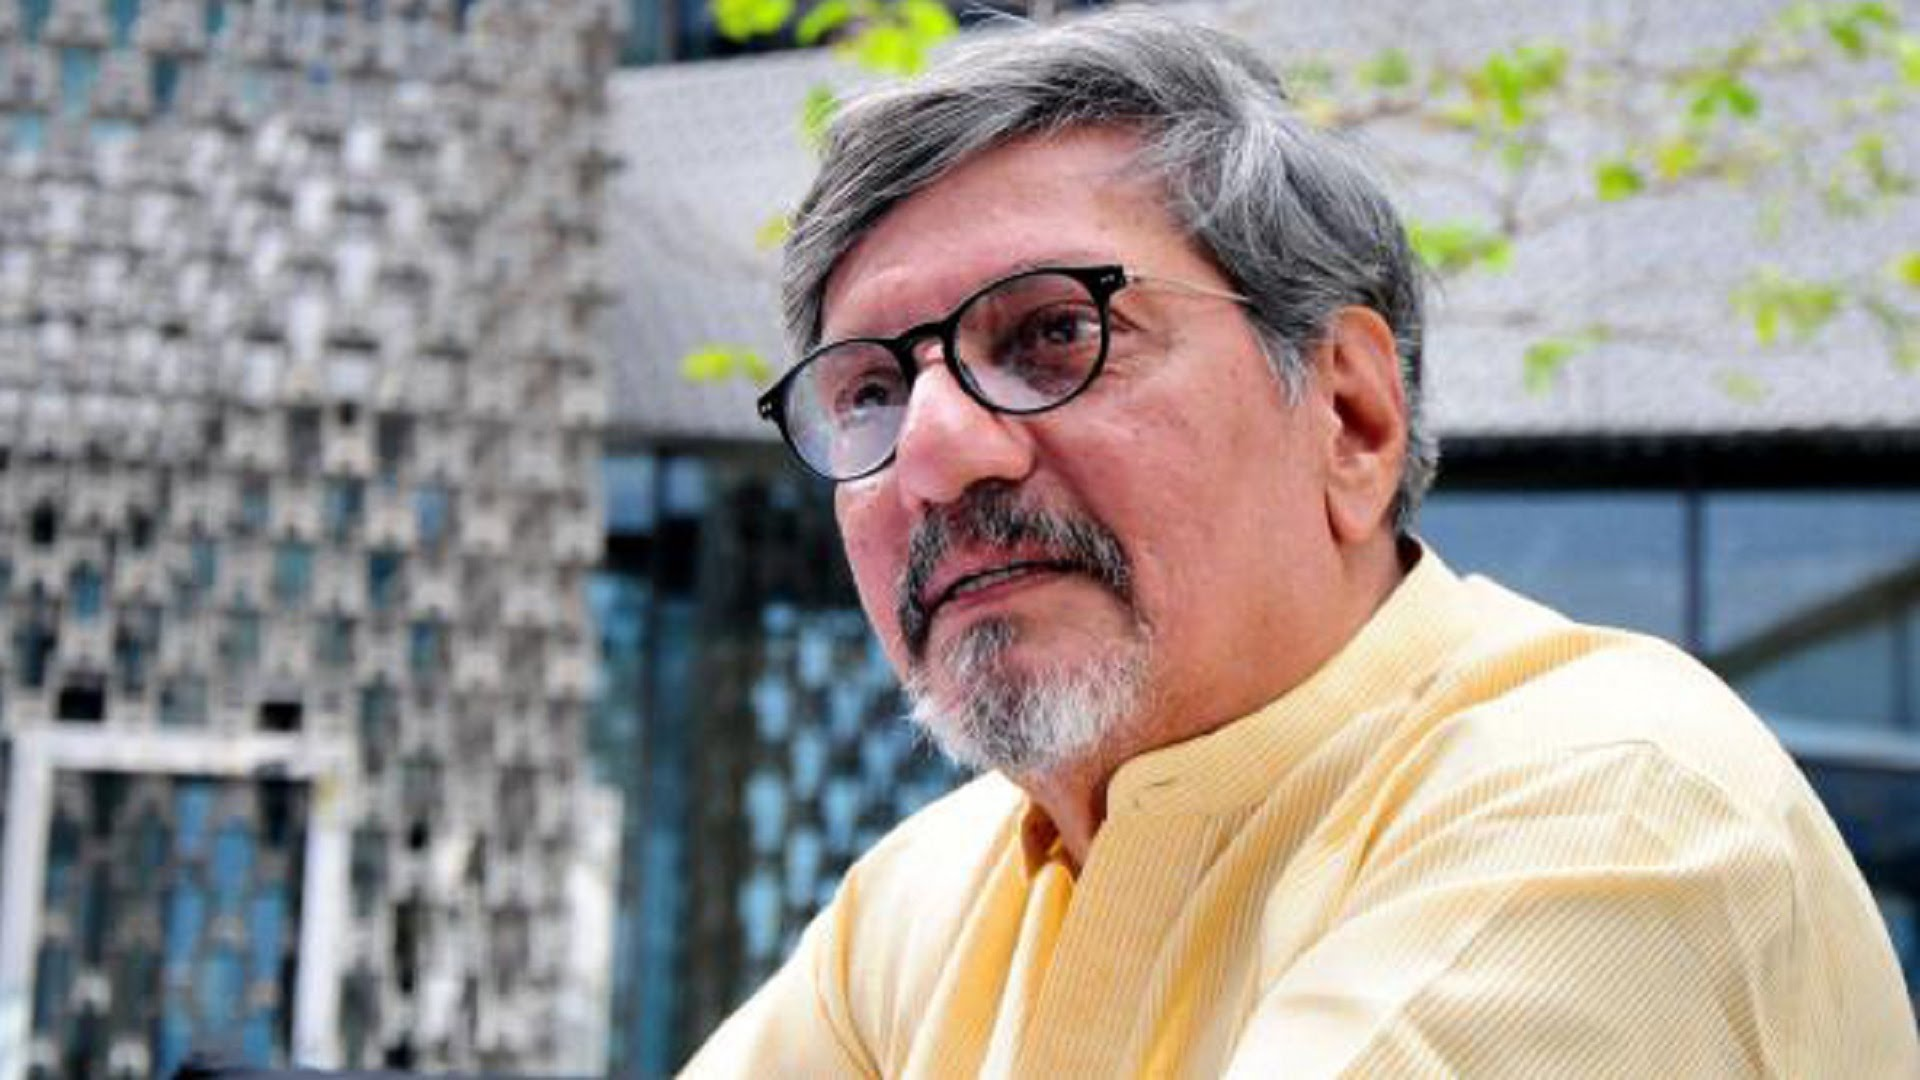 Watch: NGMA Director Interrupts Amol Palekar When Art Speech Took Critical Turn